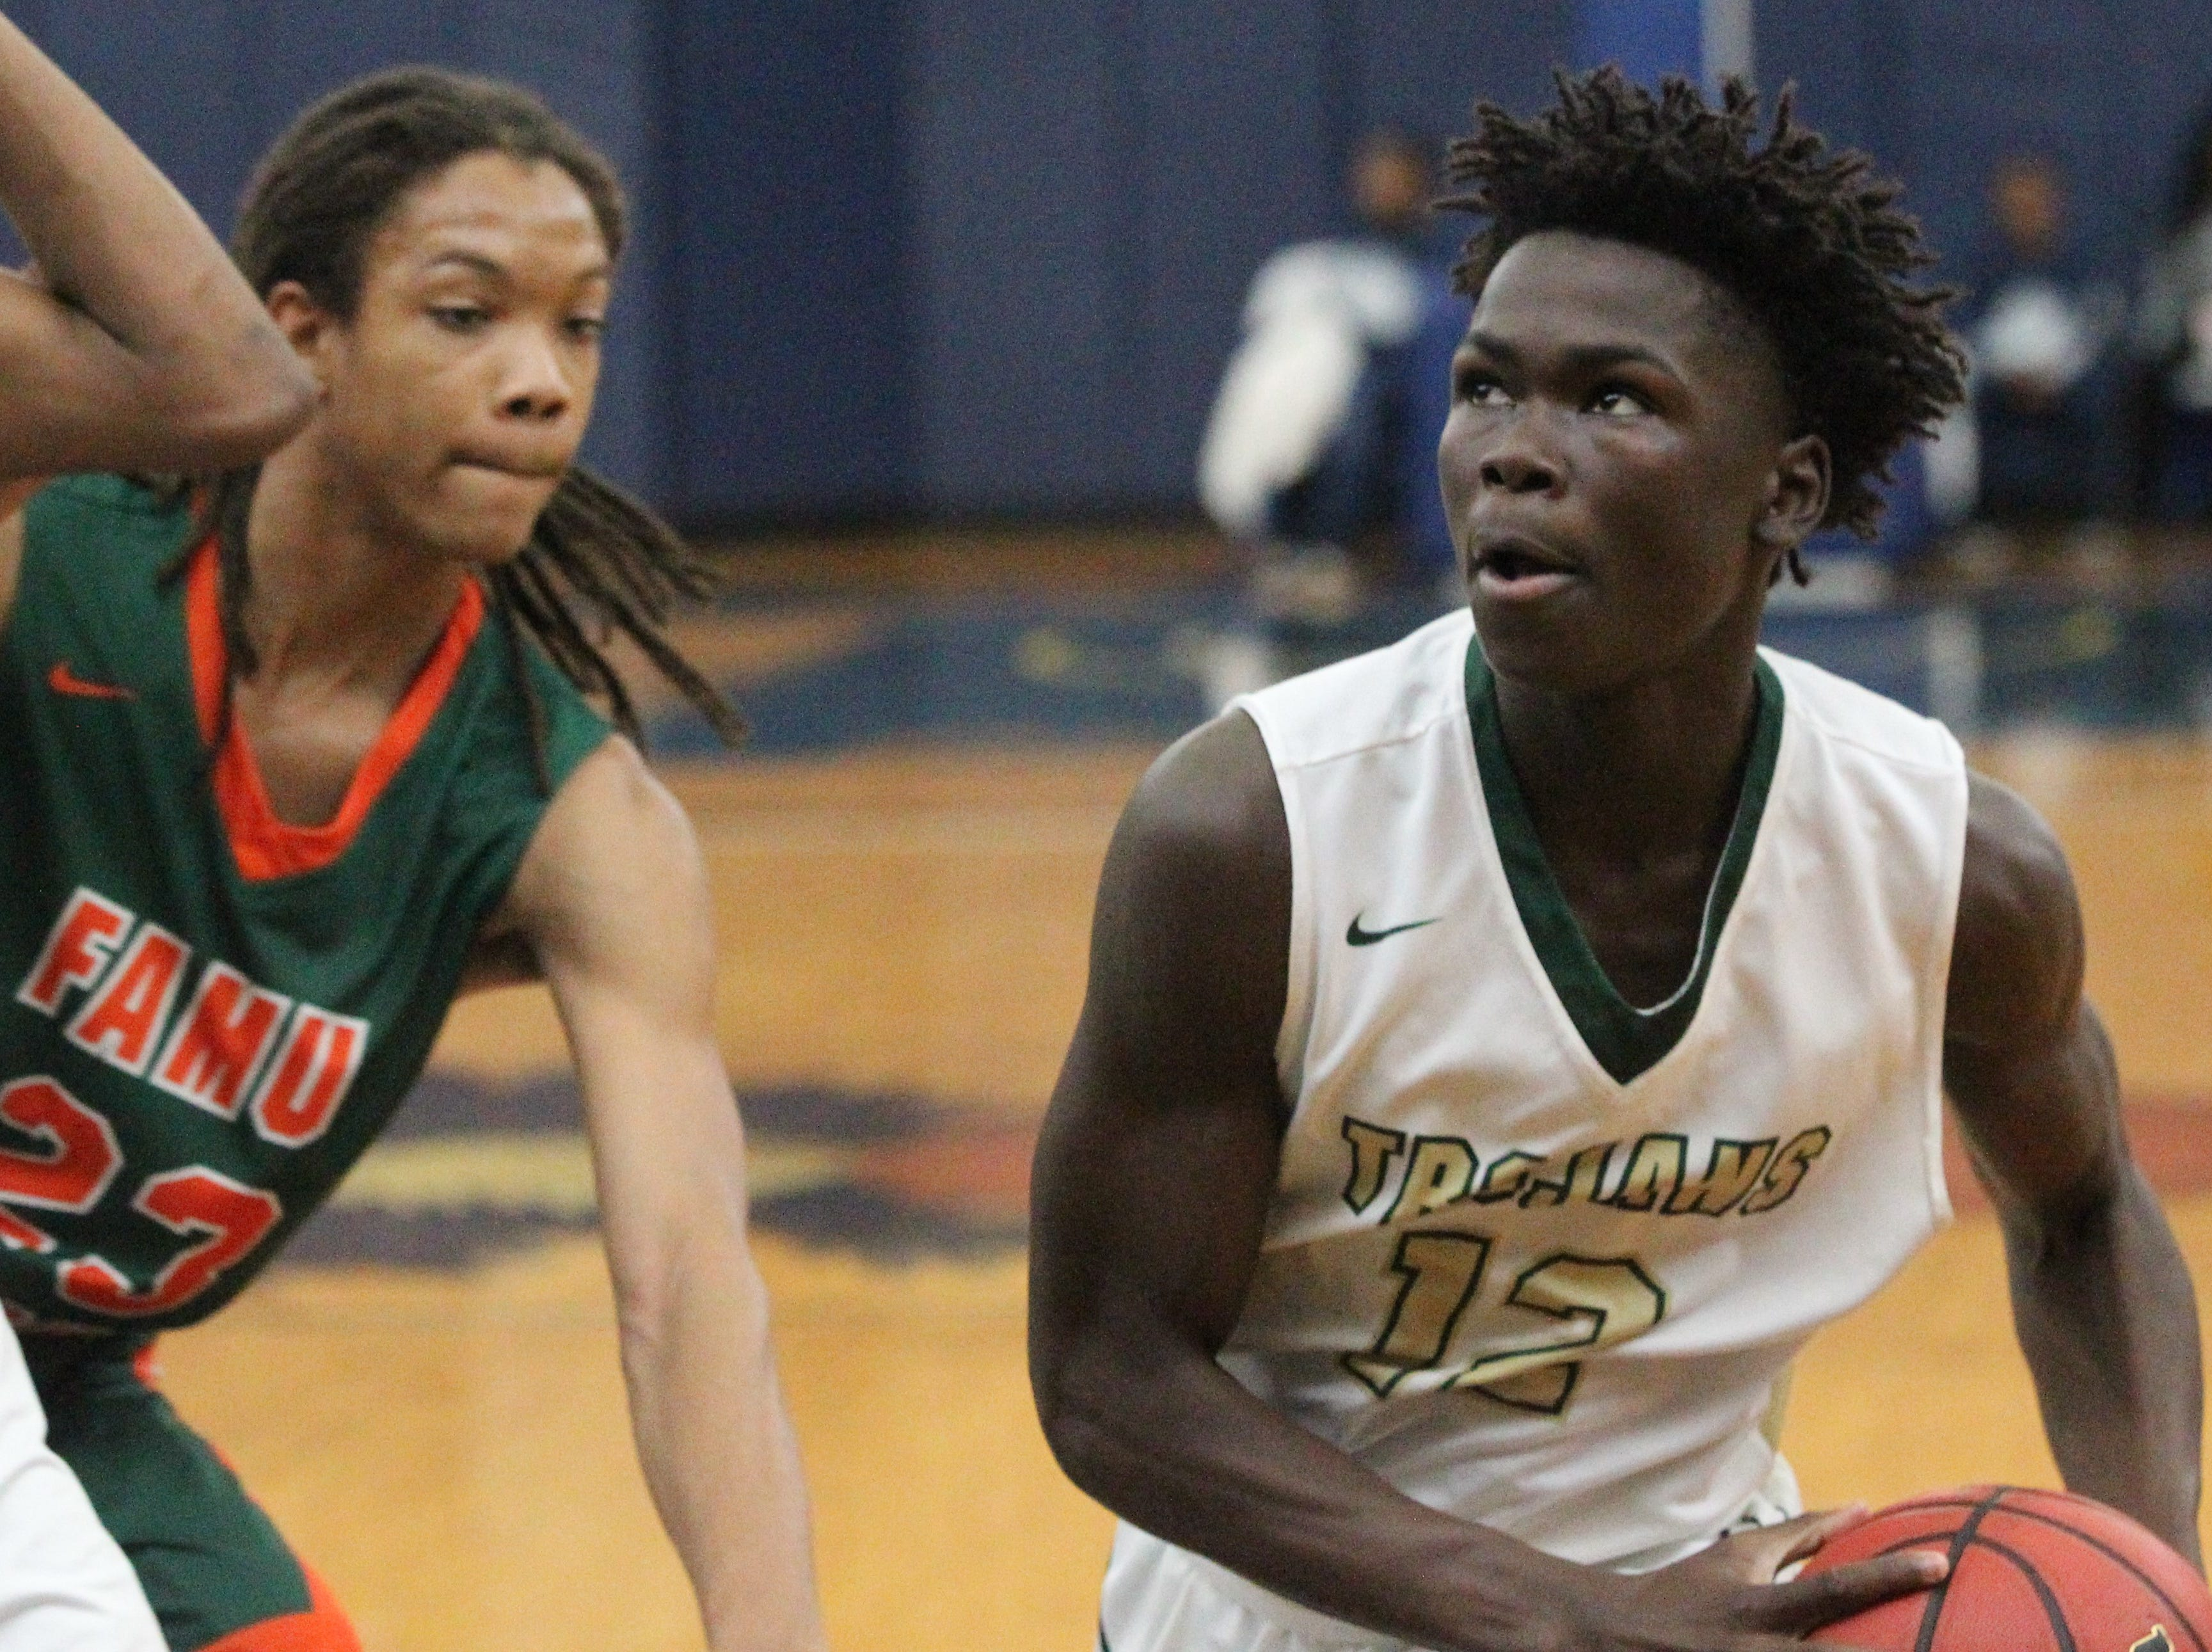 Lincoln and FAMU DRS play at the Capital City Holiday Classic.